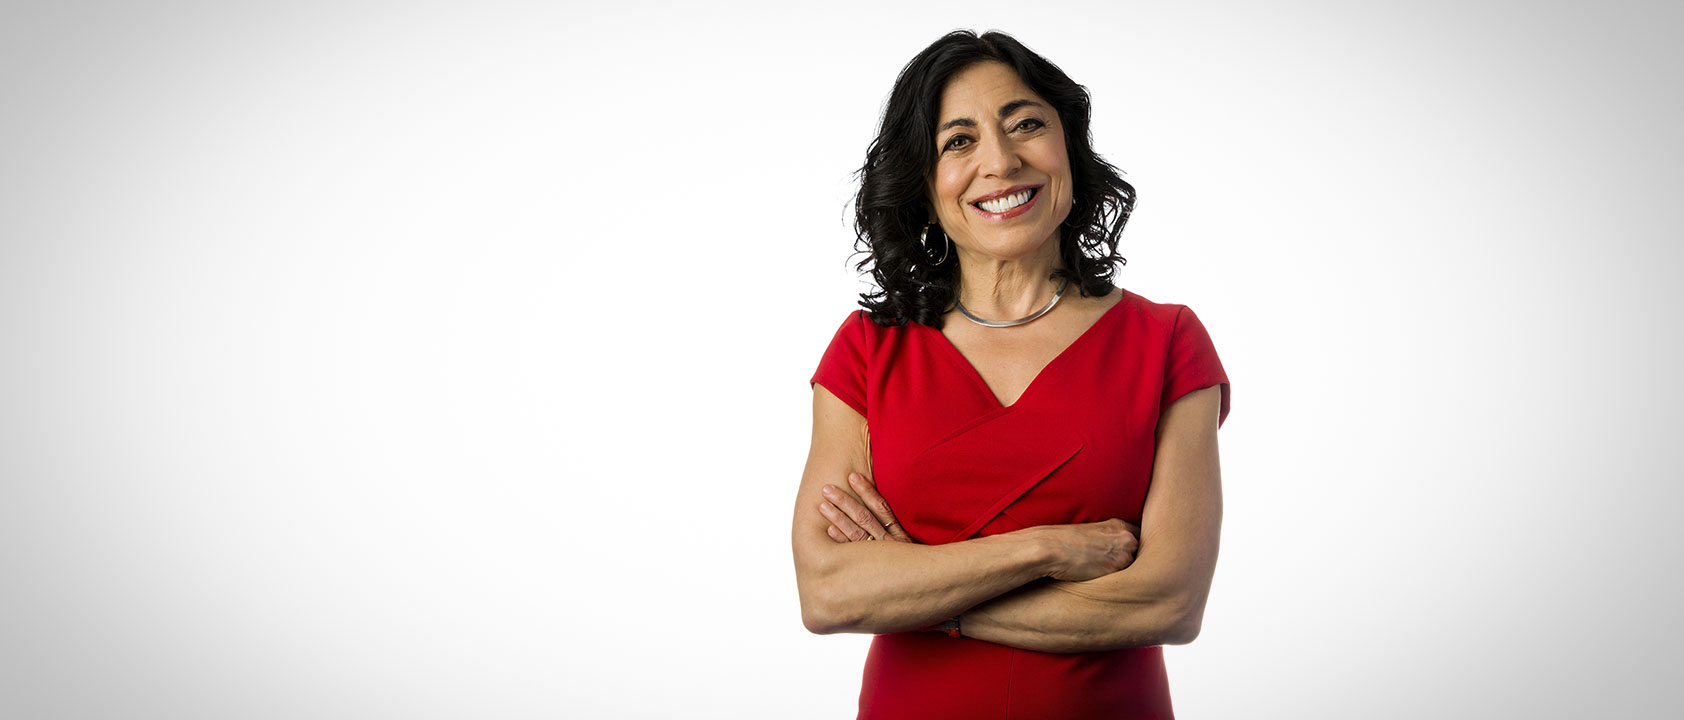 Jennifer Chayes, Distinguished Scientist and Managing Director, Microsoft Research New England & New York City